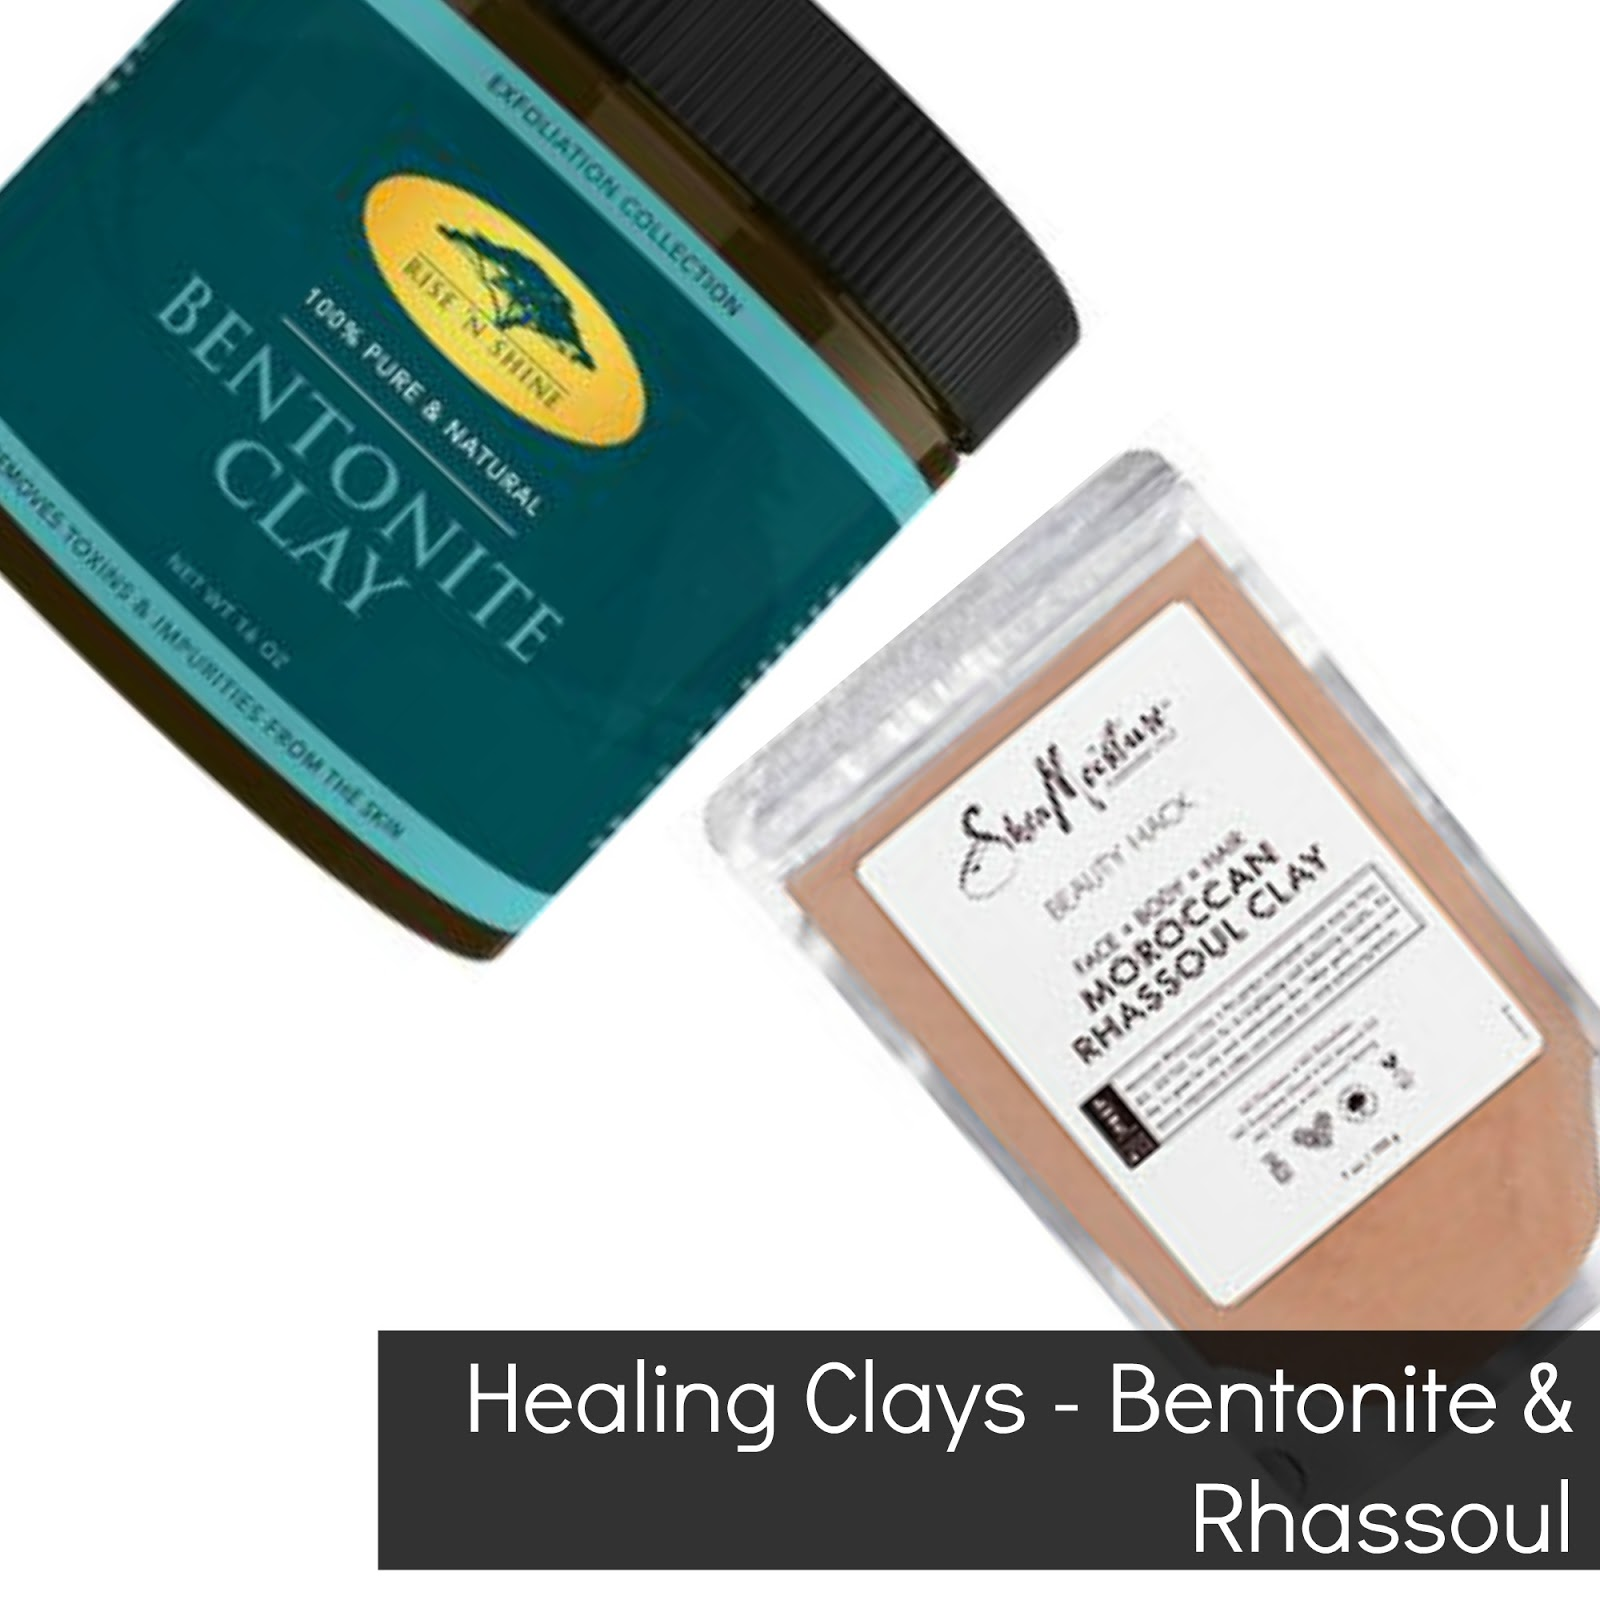 Click here to buy SheaMoisture Beauty Hack Face + Body + Hair Moroccan Rhassoul Clay for your summer cleansing.